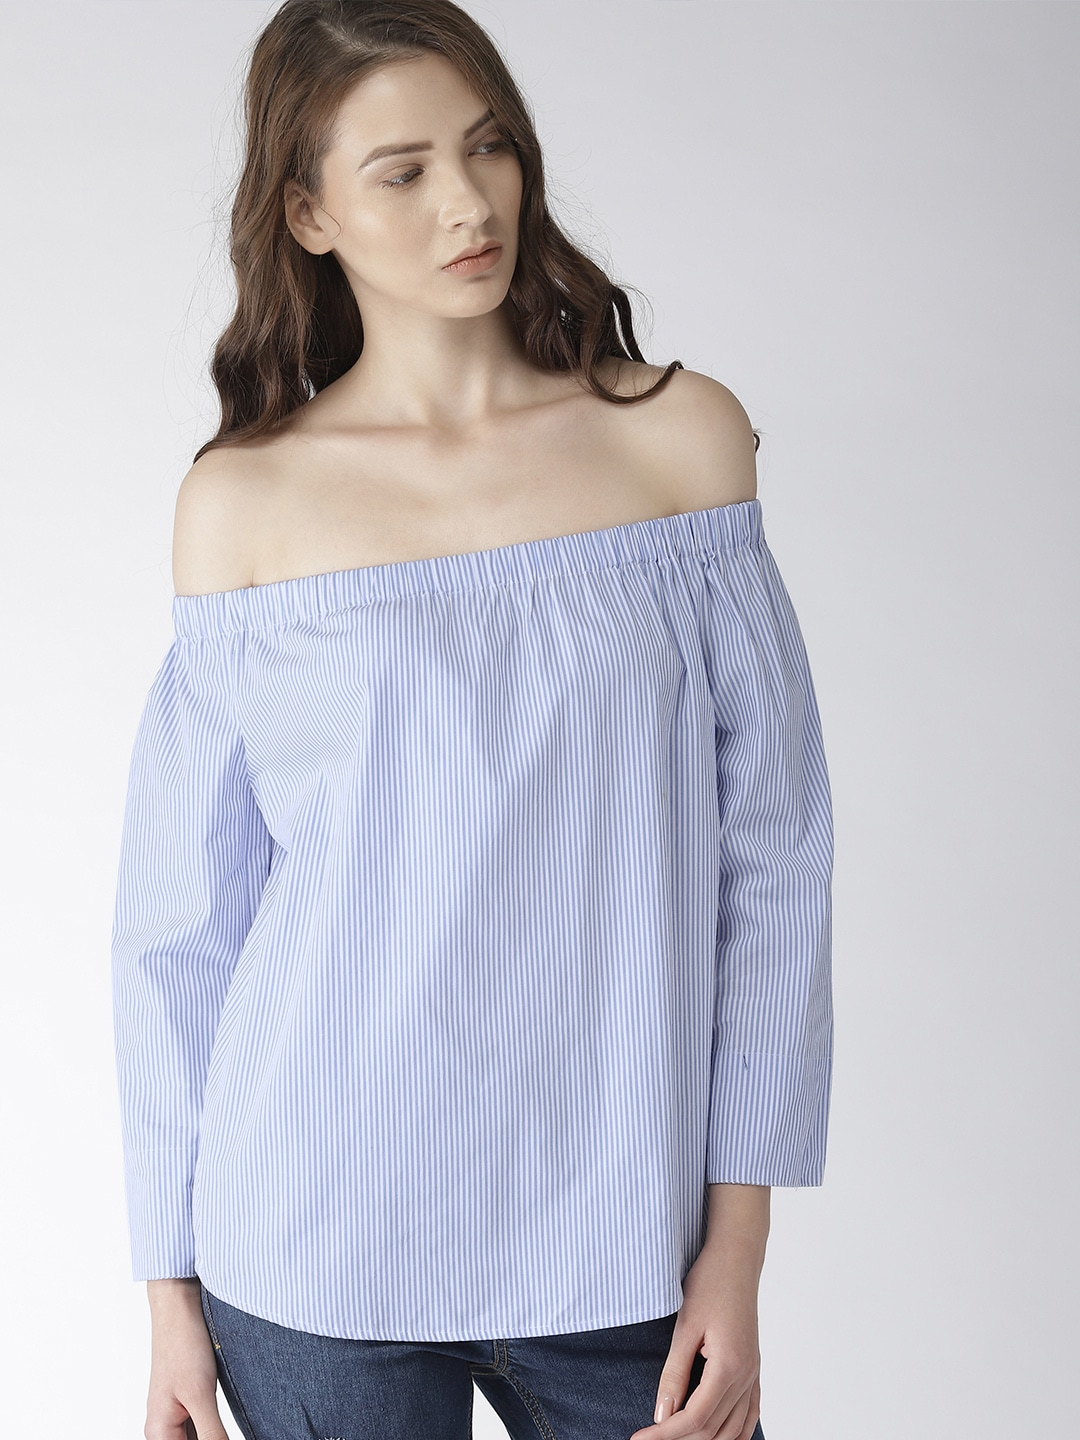 31fb3934cc6bbb Forever 21 Three Quarter Sleeves Topwear - Buy Forever 21 Three Quarter  Sleeves Topwear online in India